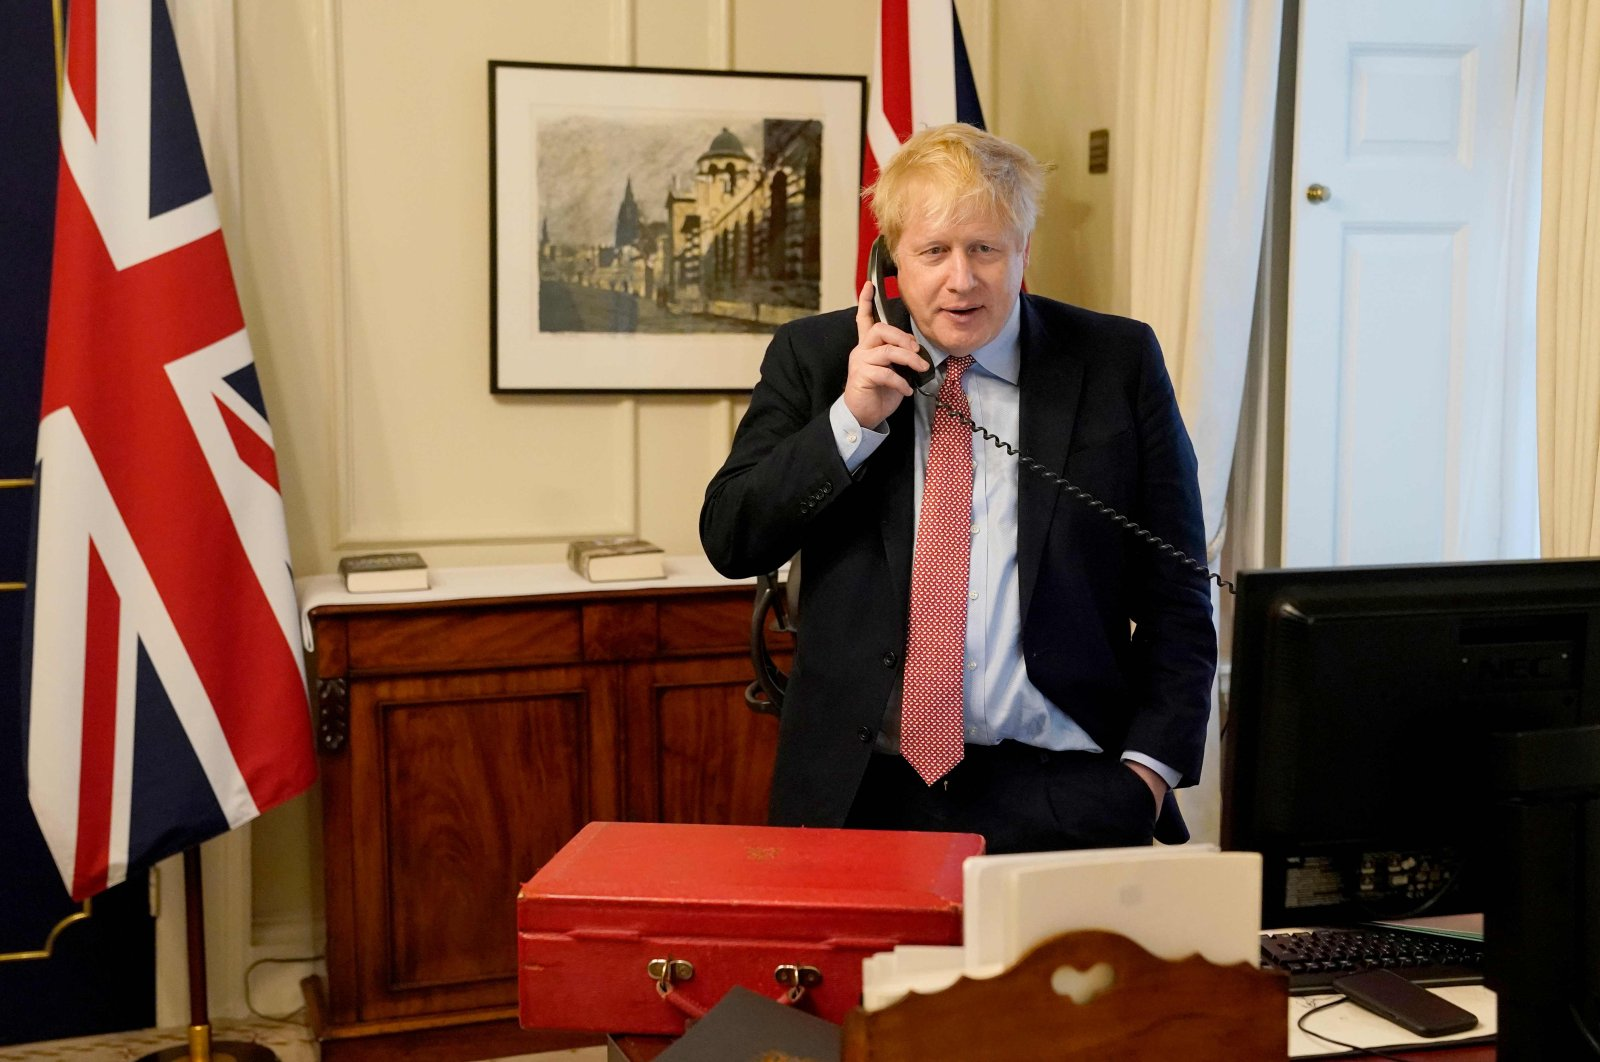 Britain's Prime Minister Boris Johnson on the telephone in his office in 10 Downing Street, to Queen Elizabeth II for their weekly audience during the coronavirus crisis, Wednesday, March 25, 2020. (AFP Photo)